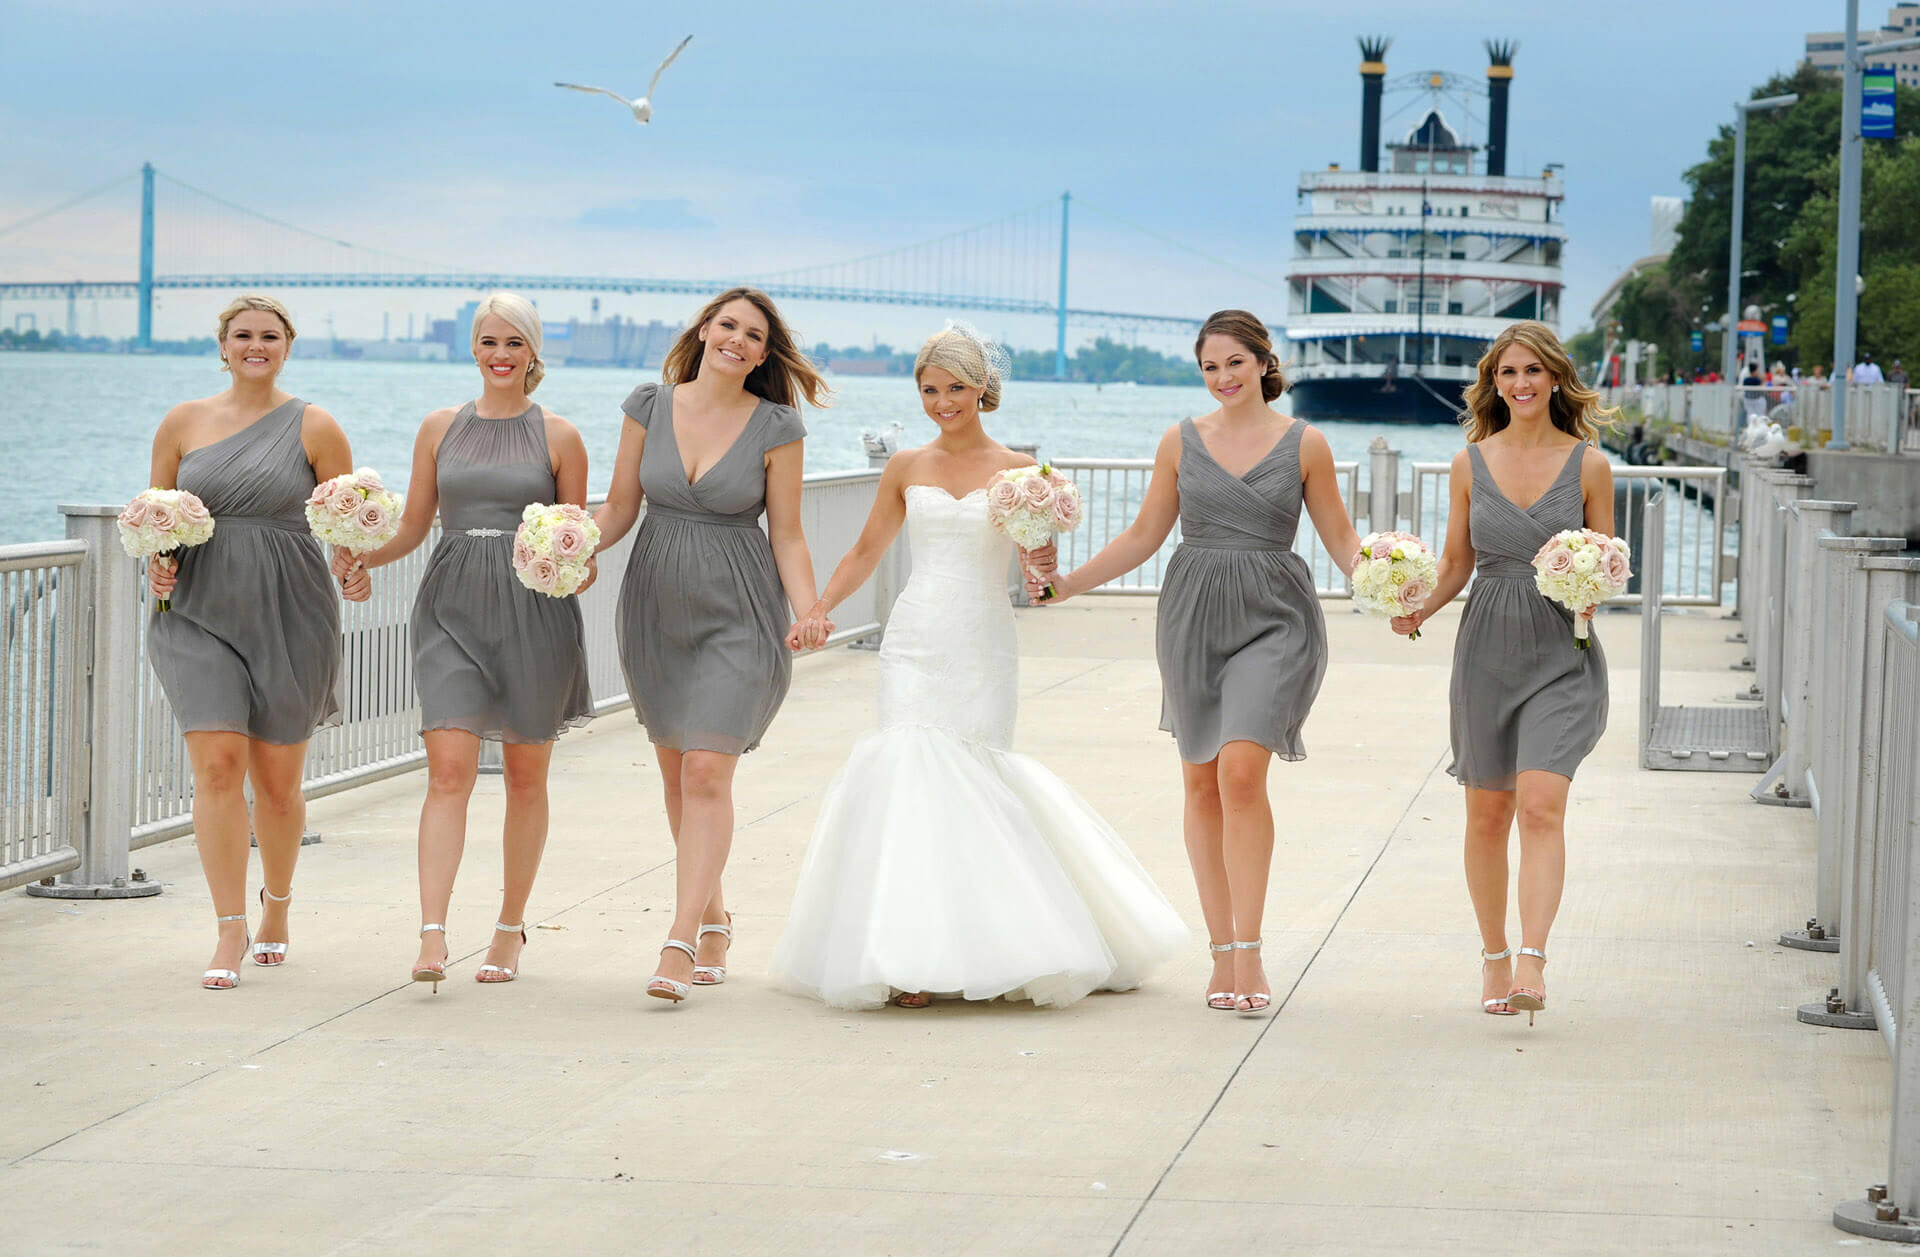 Best Detroit Michigan wedding photographer's photo of a Michigan bride and her bridesmaids walk on the boardwalk of Detroit in front of the Waterview Loft.